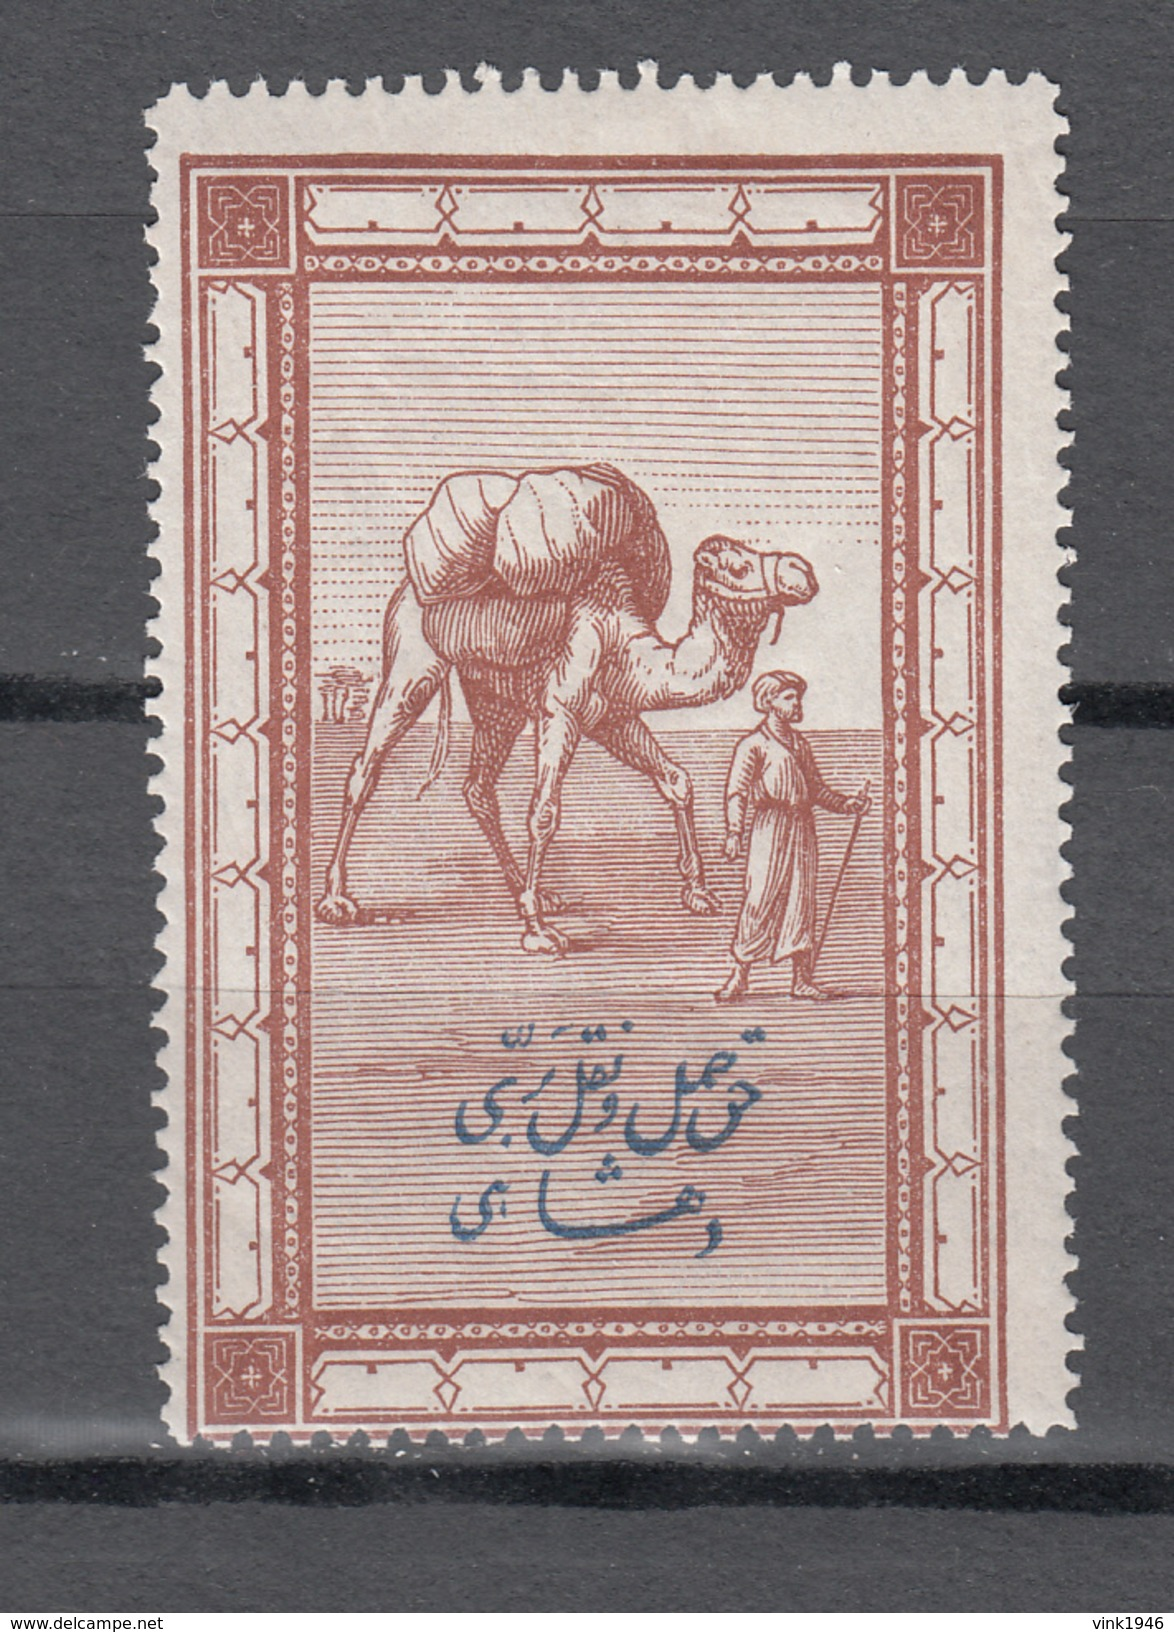 Camel ???? Please Give Me Information About This Stamp - Timbres